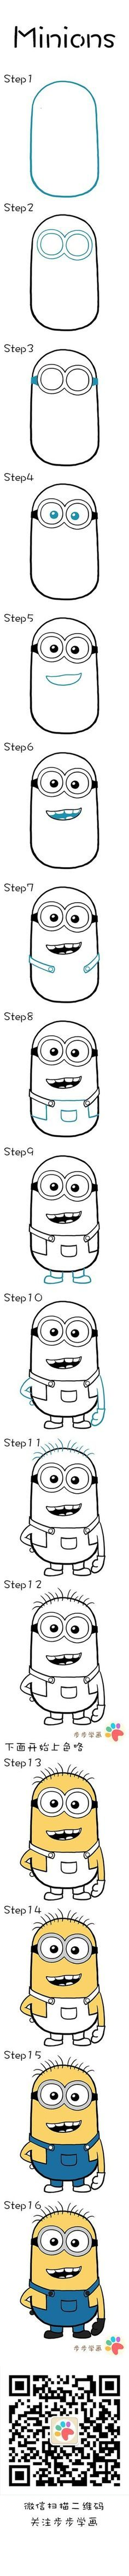 Comment Dessiner Un Minion : comment, dessiner, minion, Learn, Minions:, Minion, Drawing,, Drawings,, Drawings